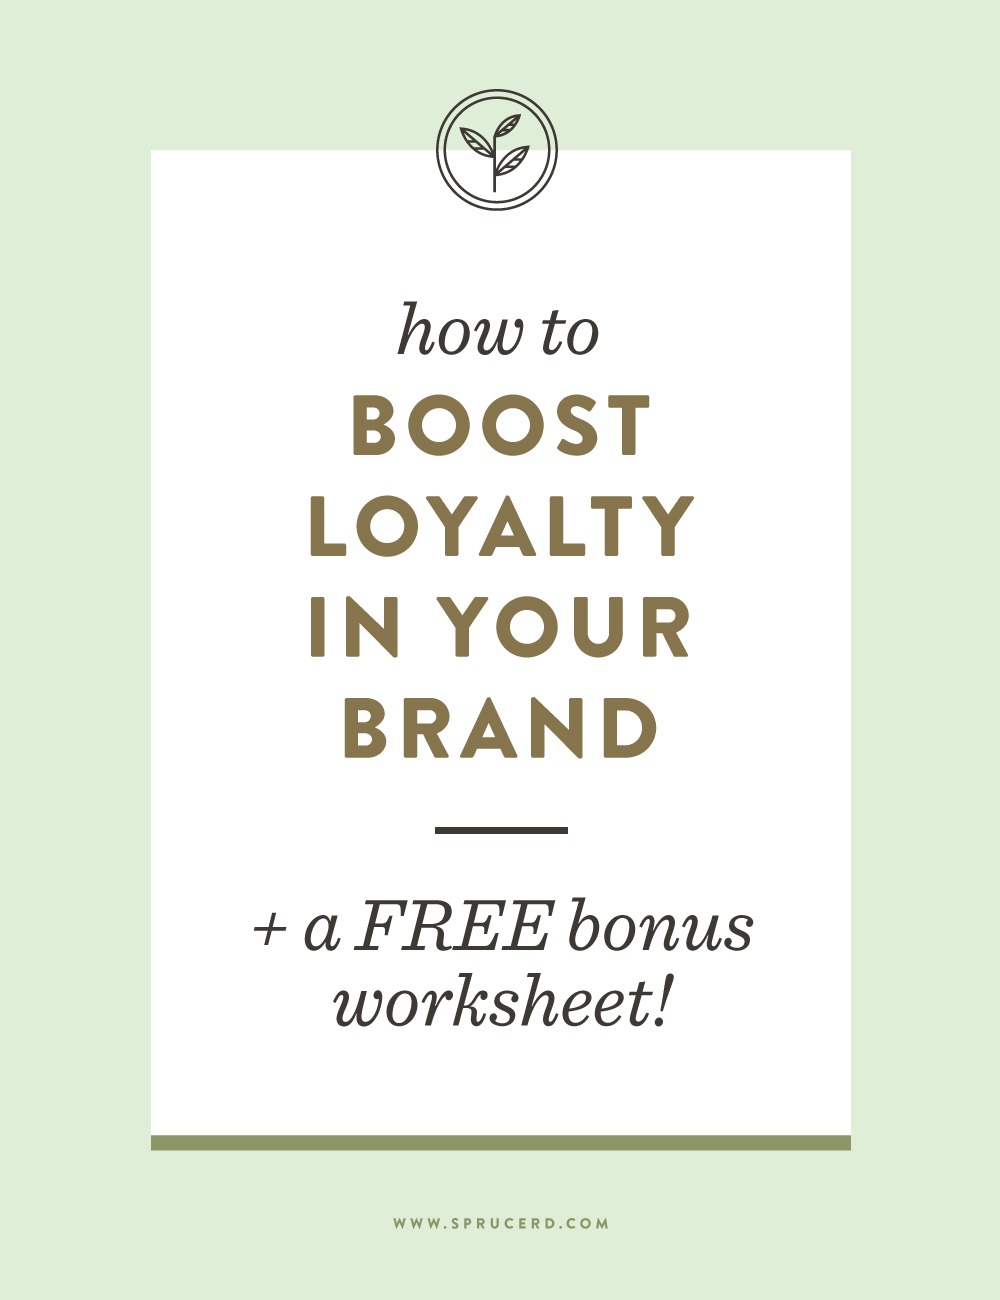 How To Boost Loyalty In Your Brand (+ a FREE bonus worksheet!) | Spruce Rd.